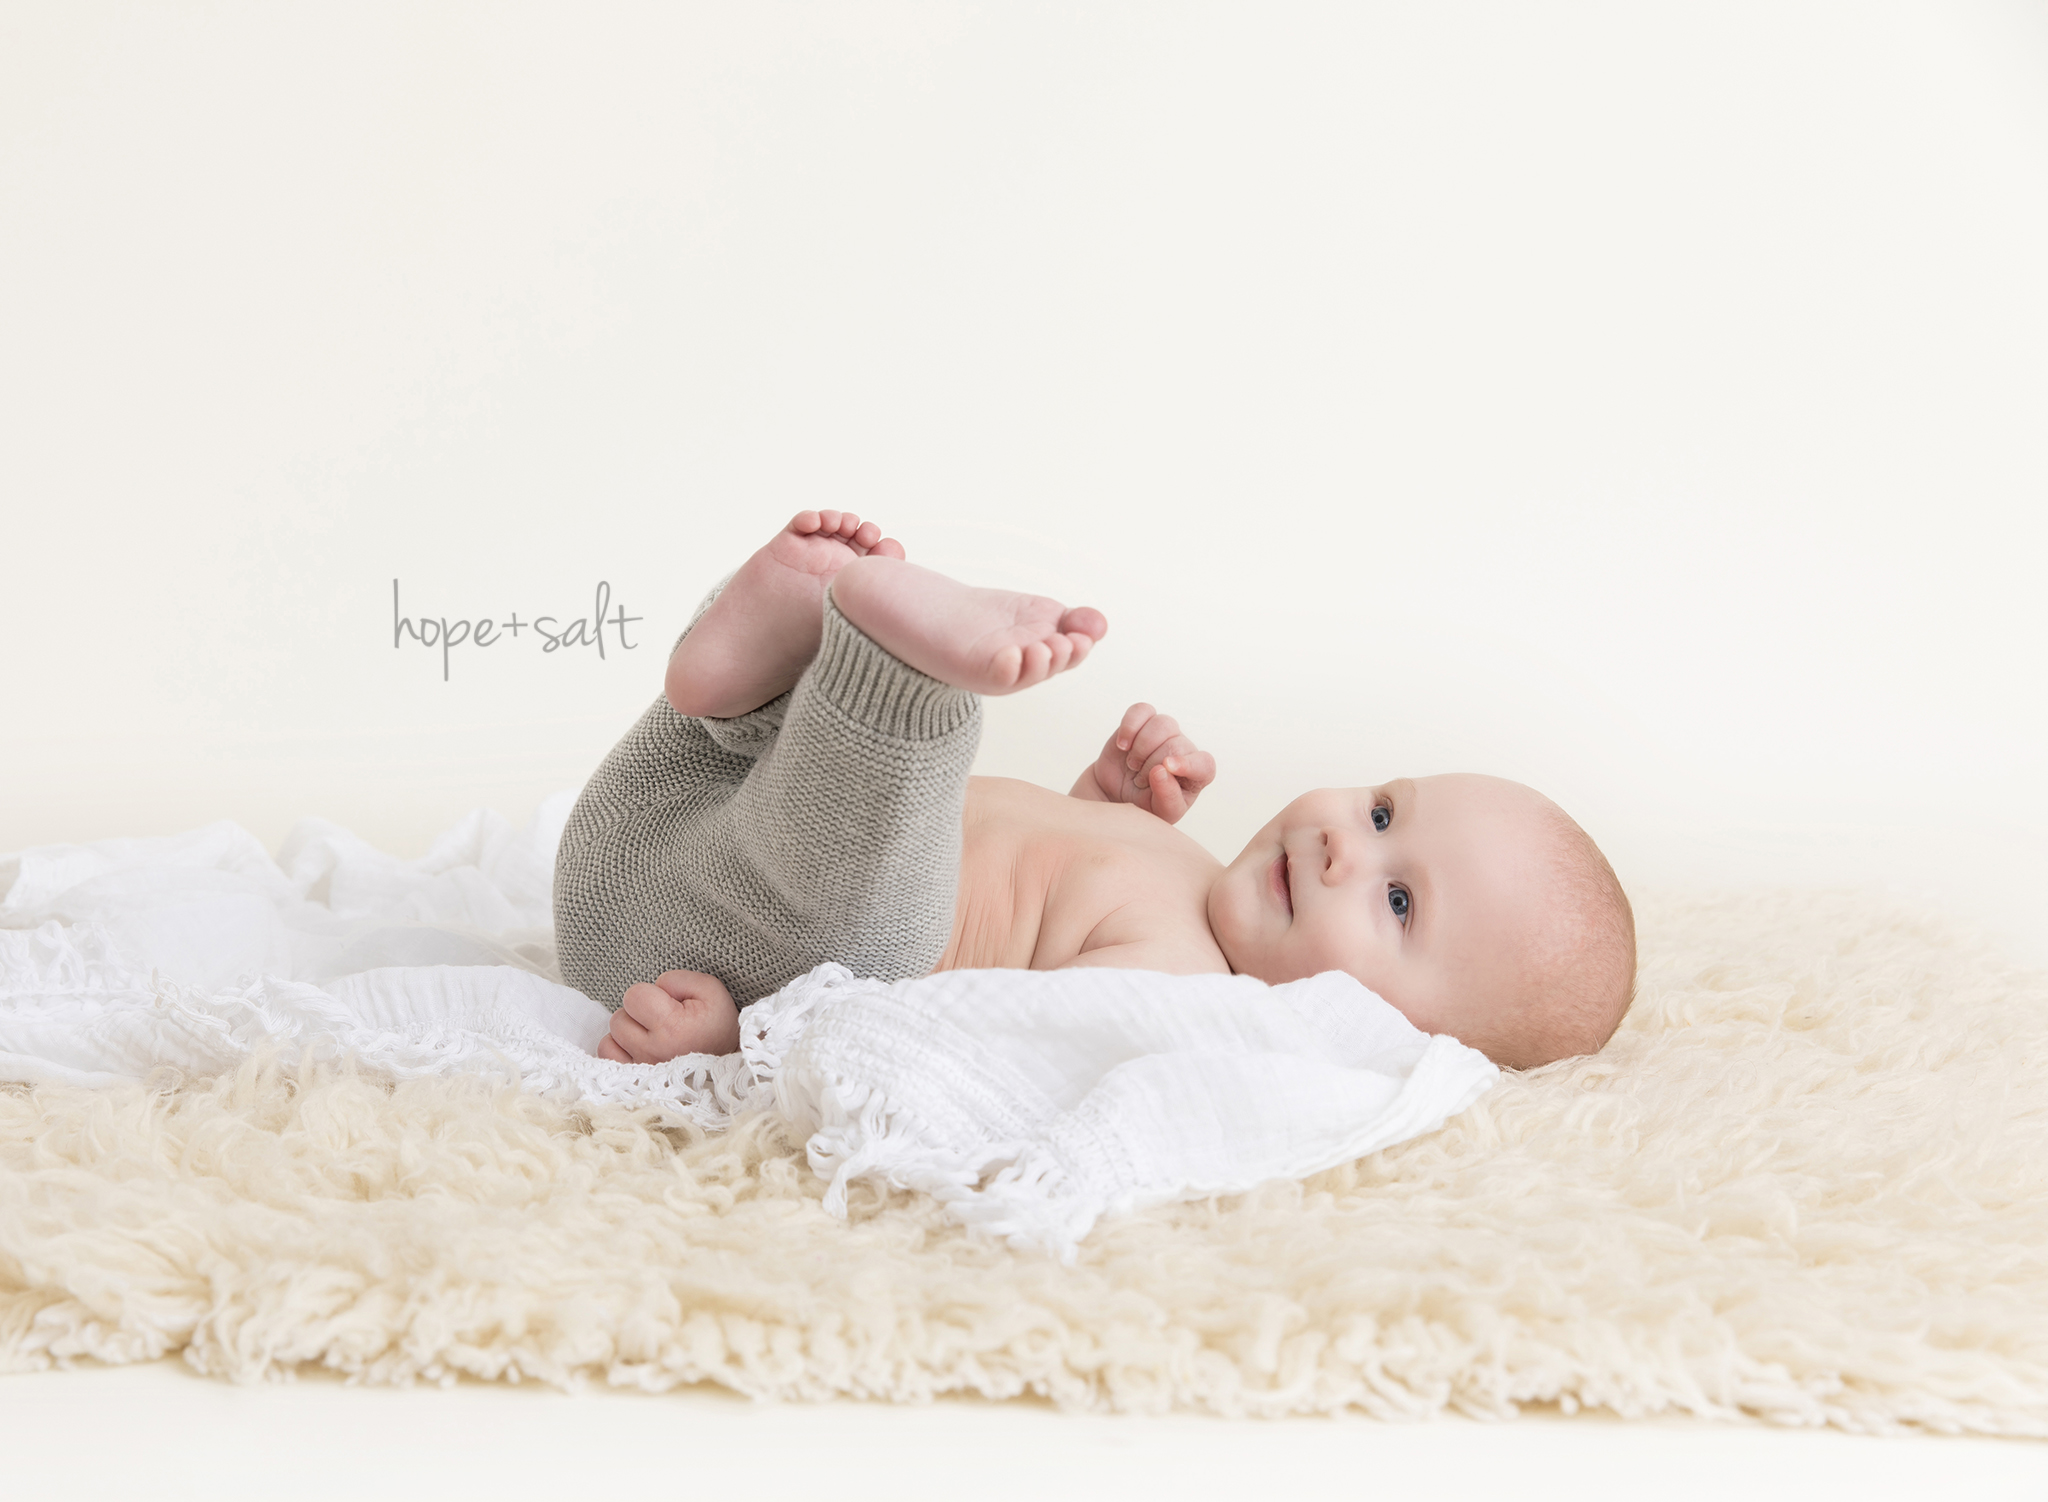 burlington baby photographer - six month old sitter boy Nathan studio session with all neutral fabrics and props